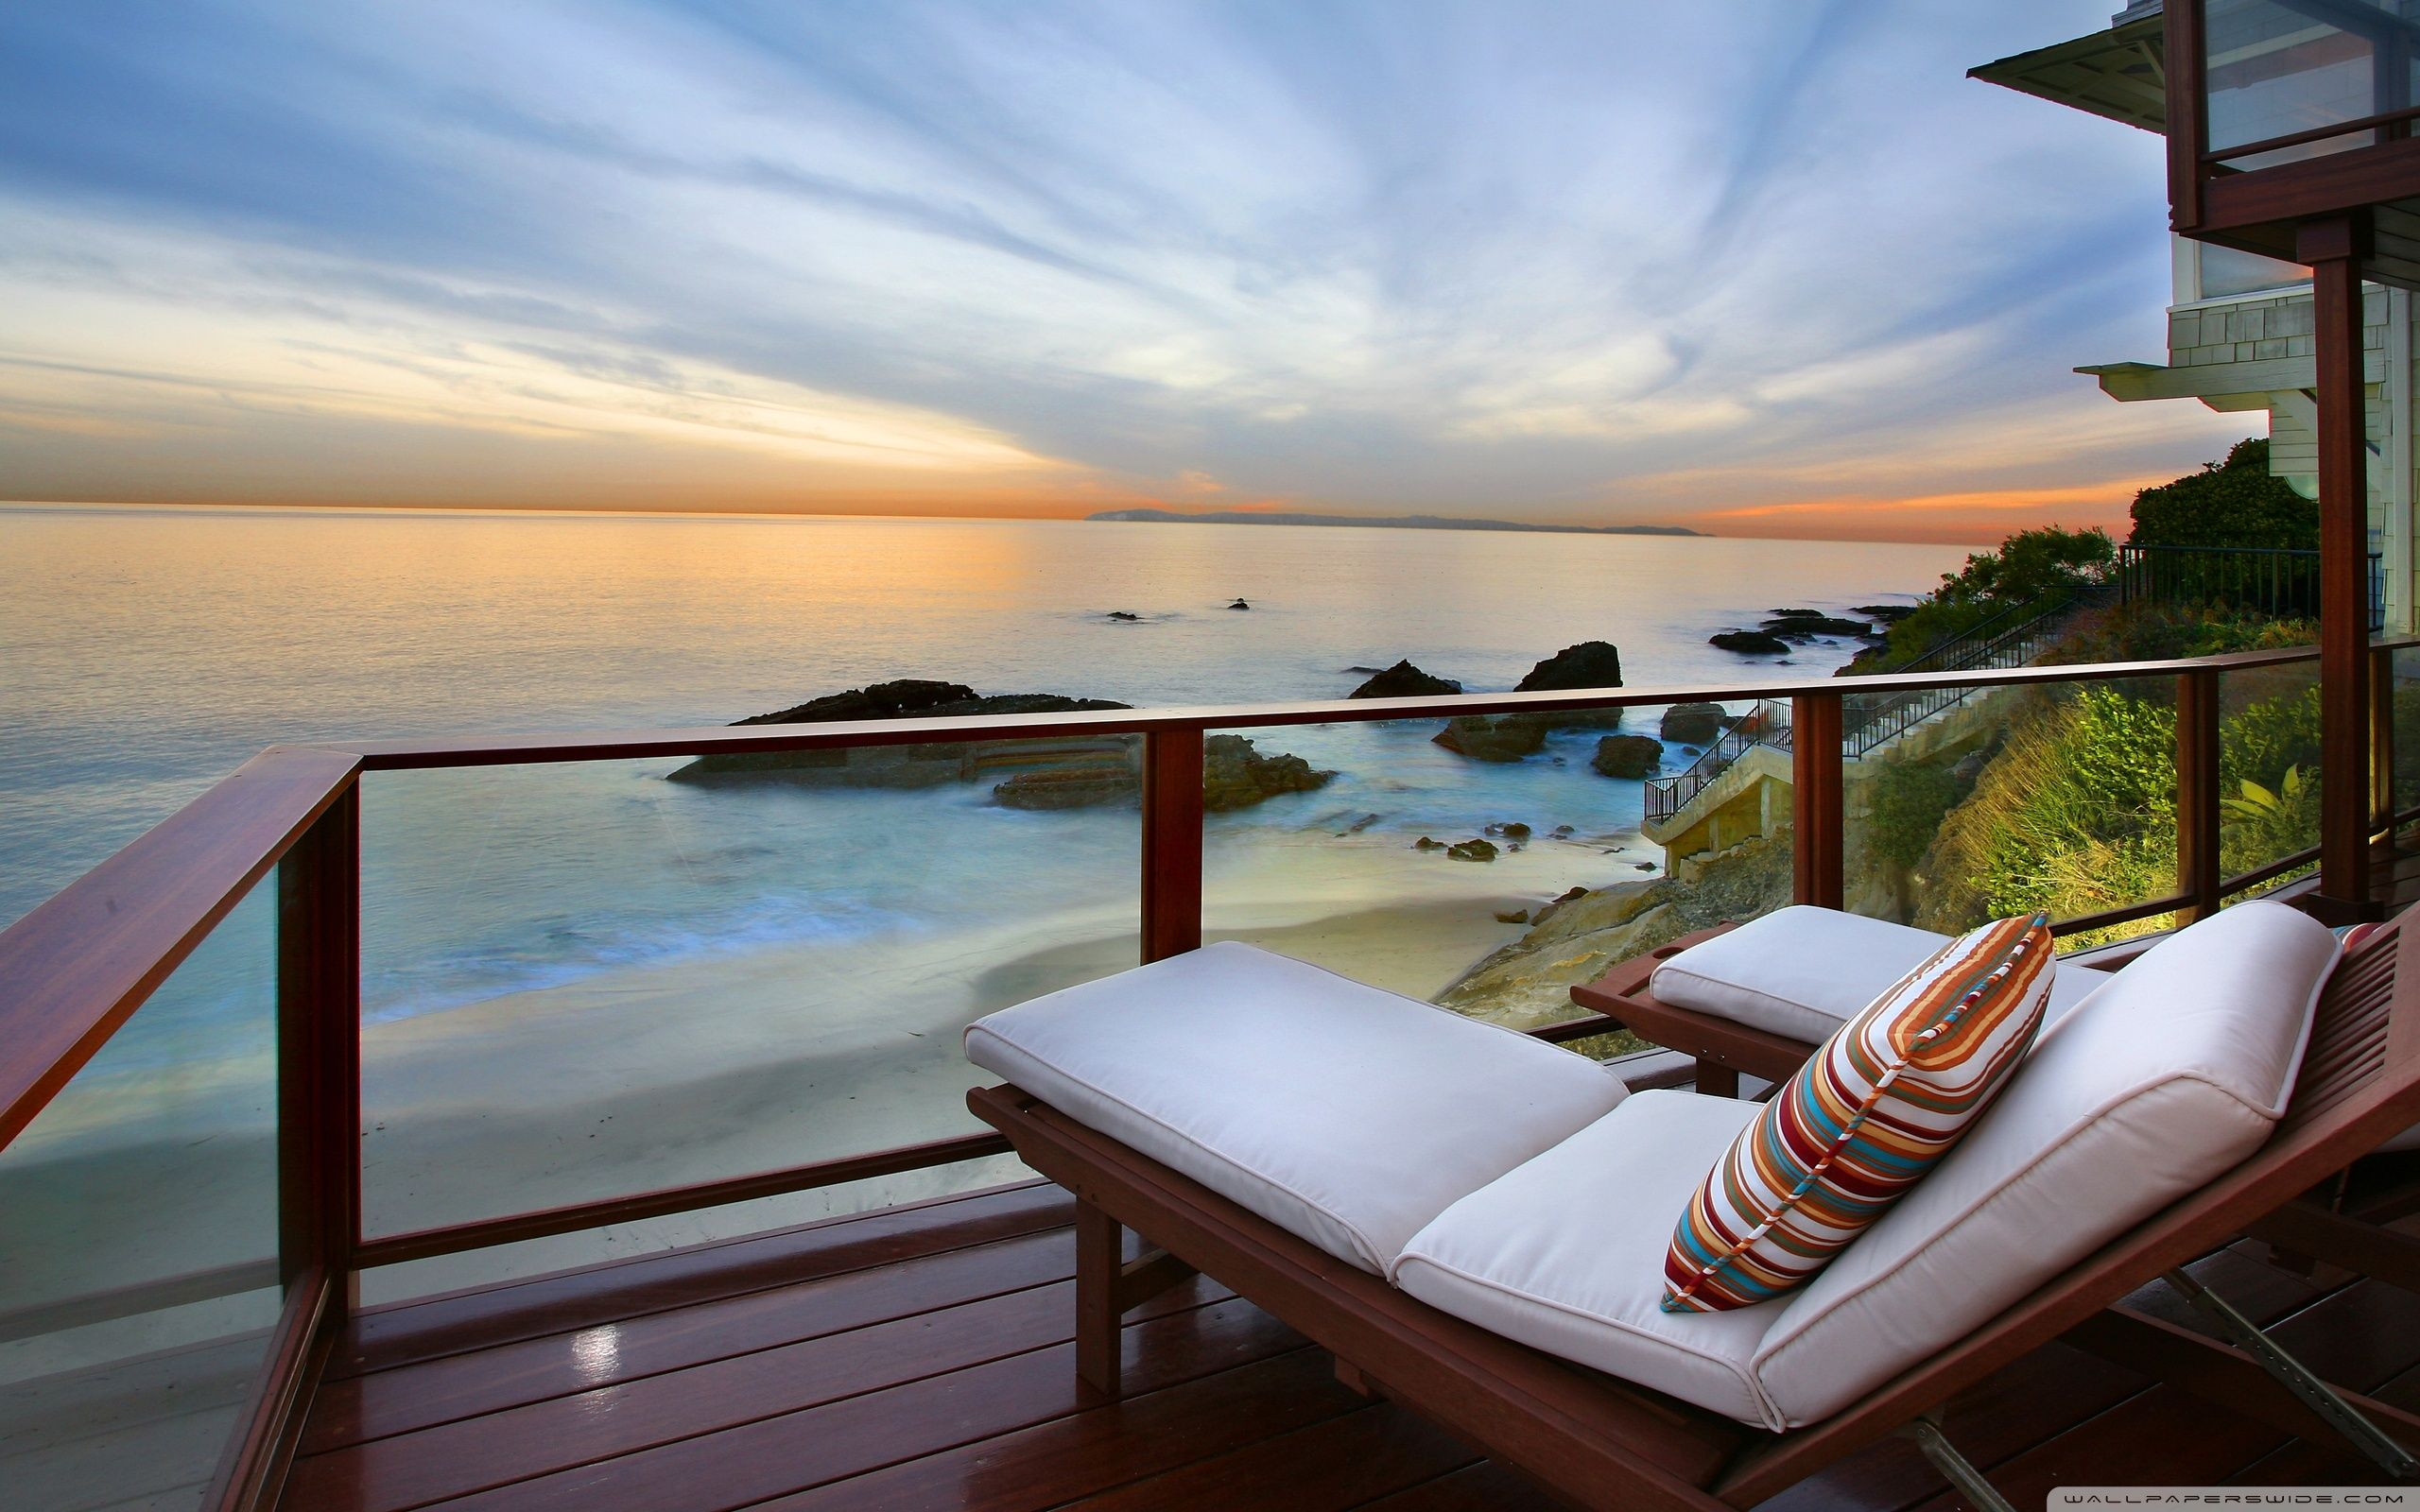 Vacation Homes Wallpapers   Top Vacation Homes Backgrounds 2560x1600